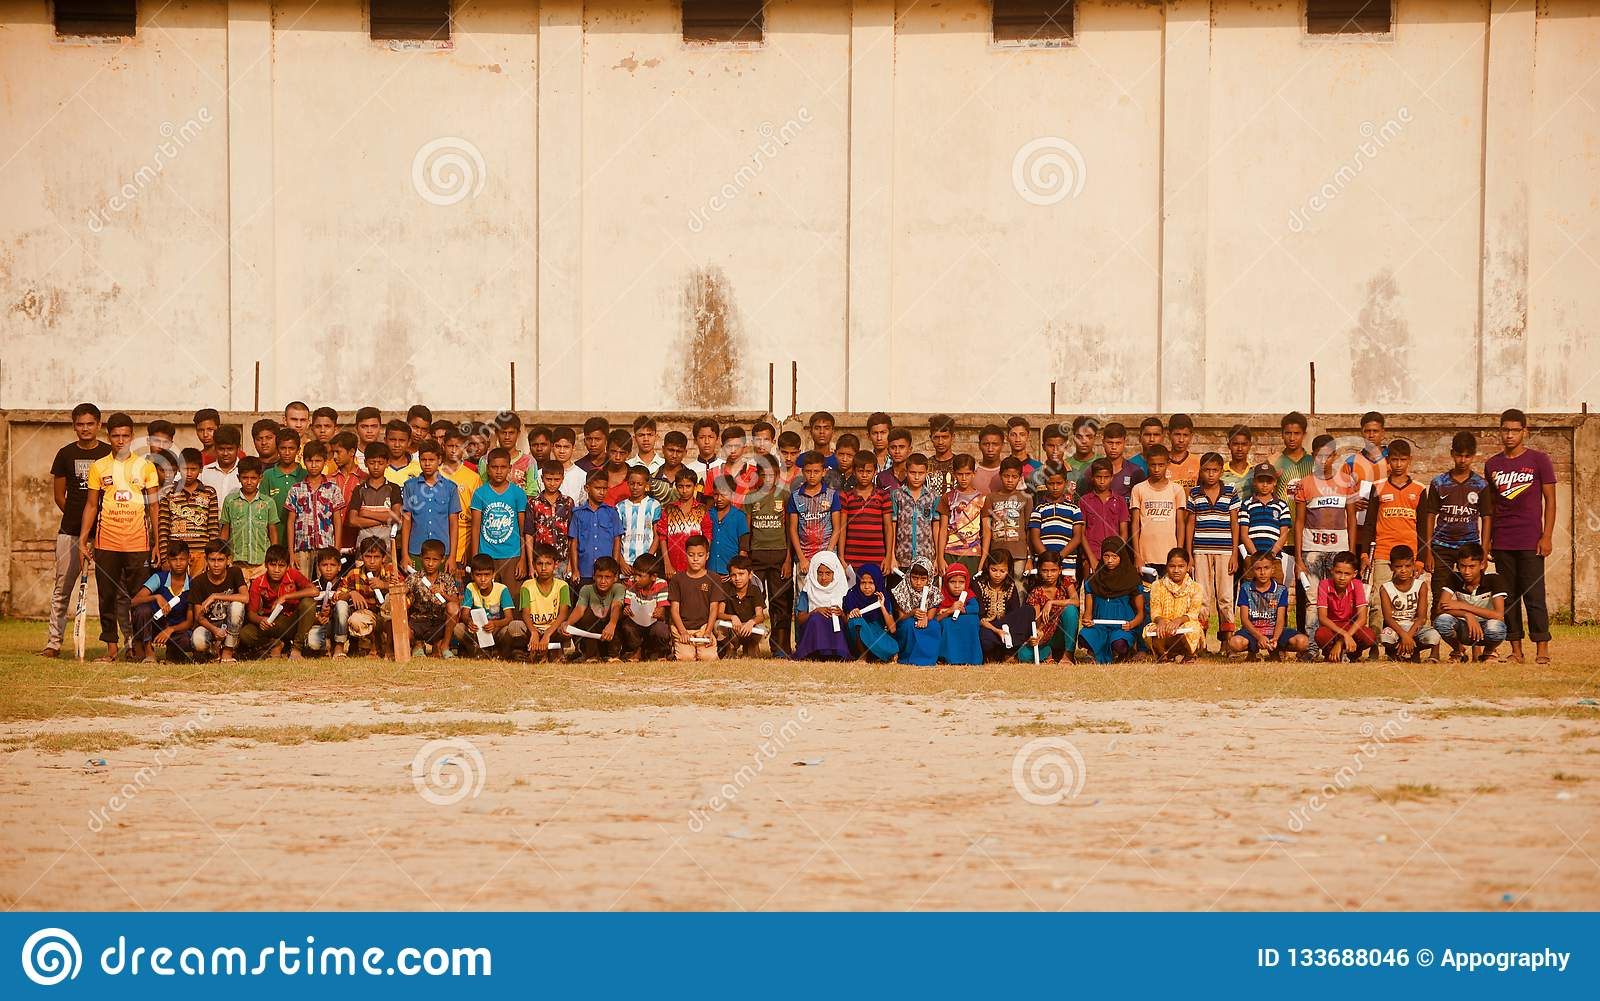 A group of school students sitting in a ground